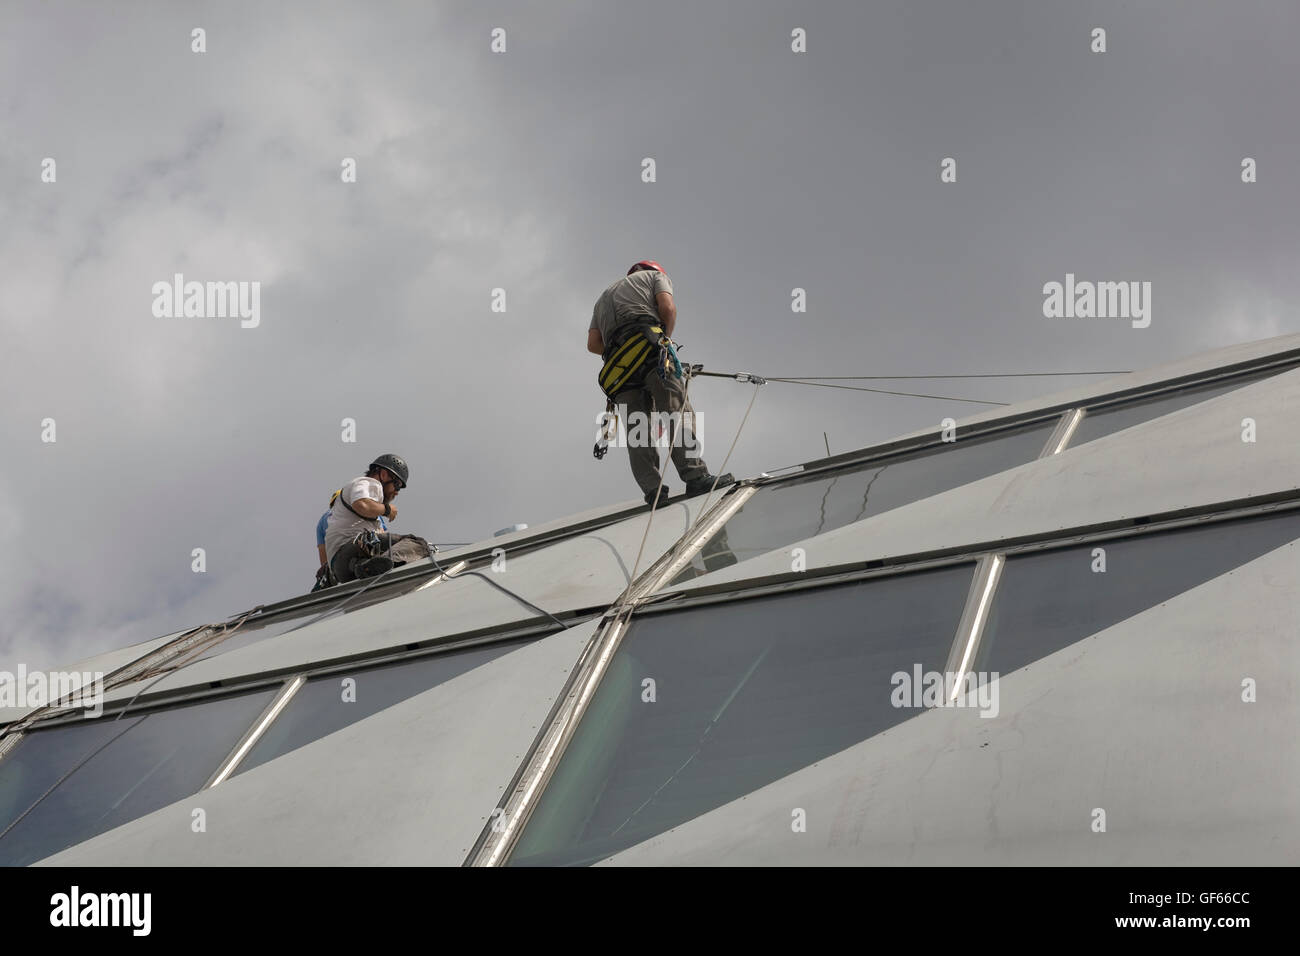 Safety Harness And Work Stock Photos Amp Safety Harness And